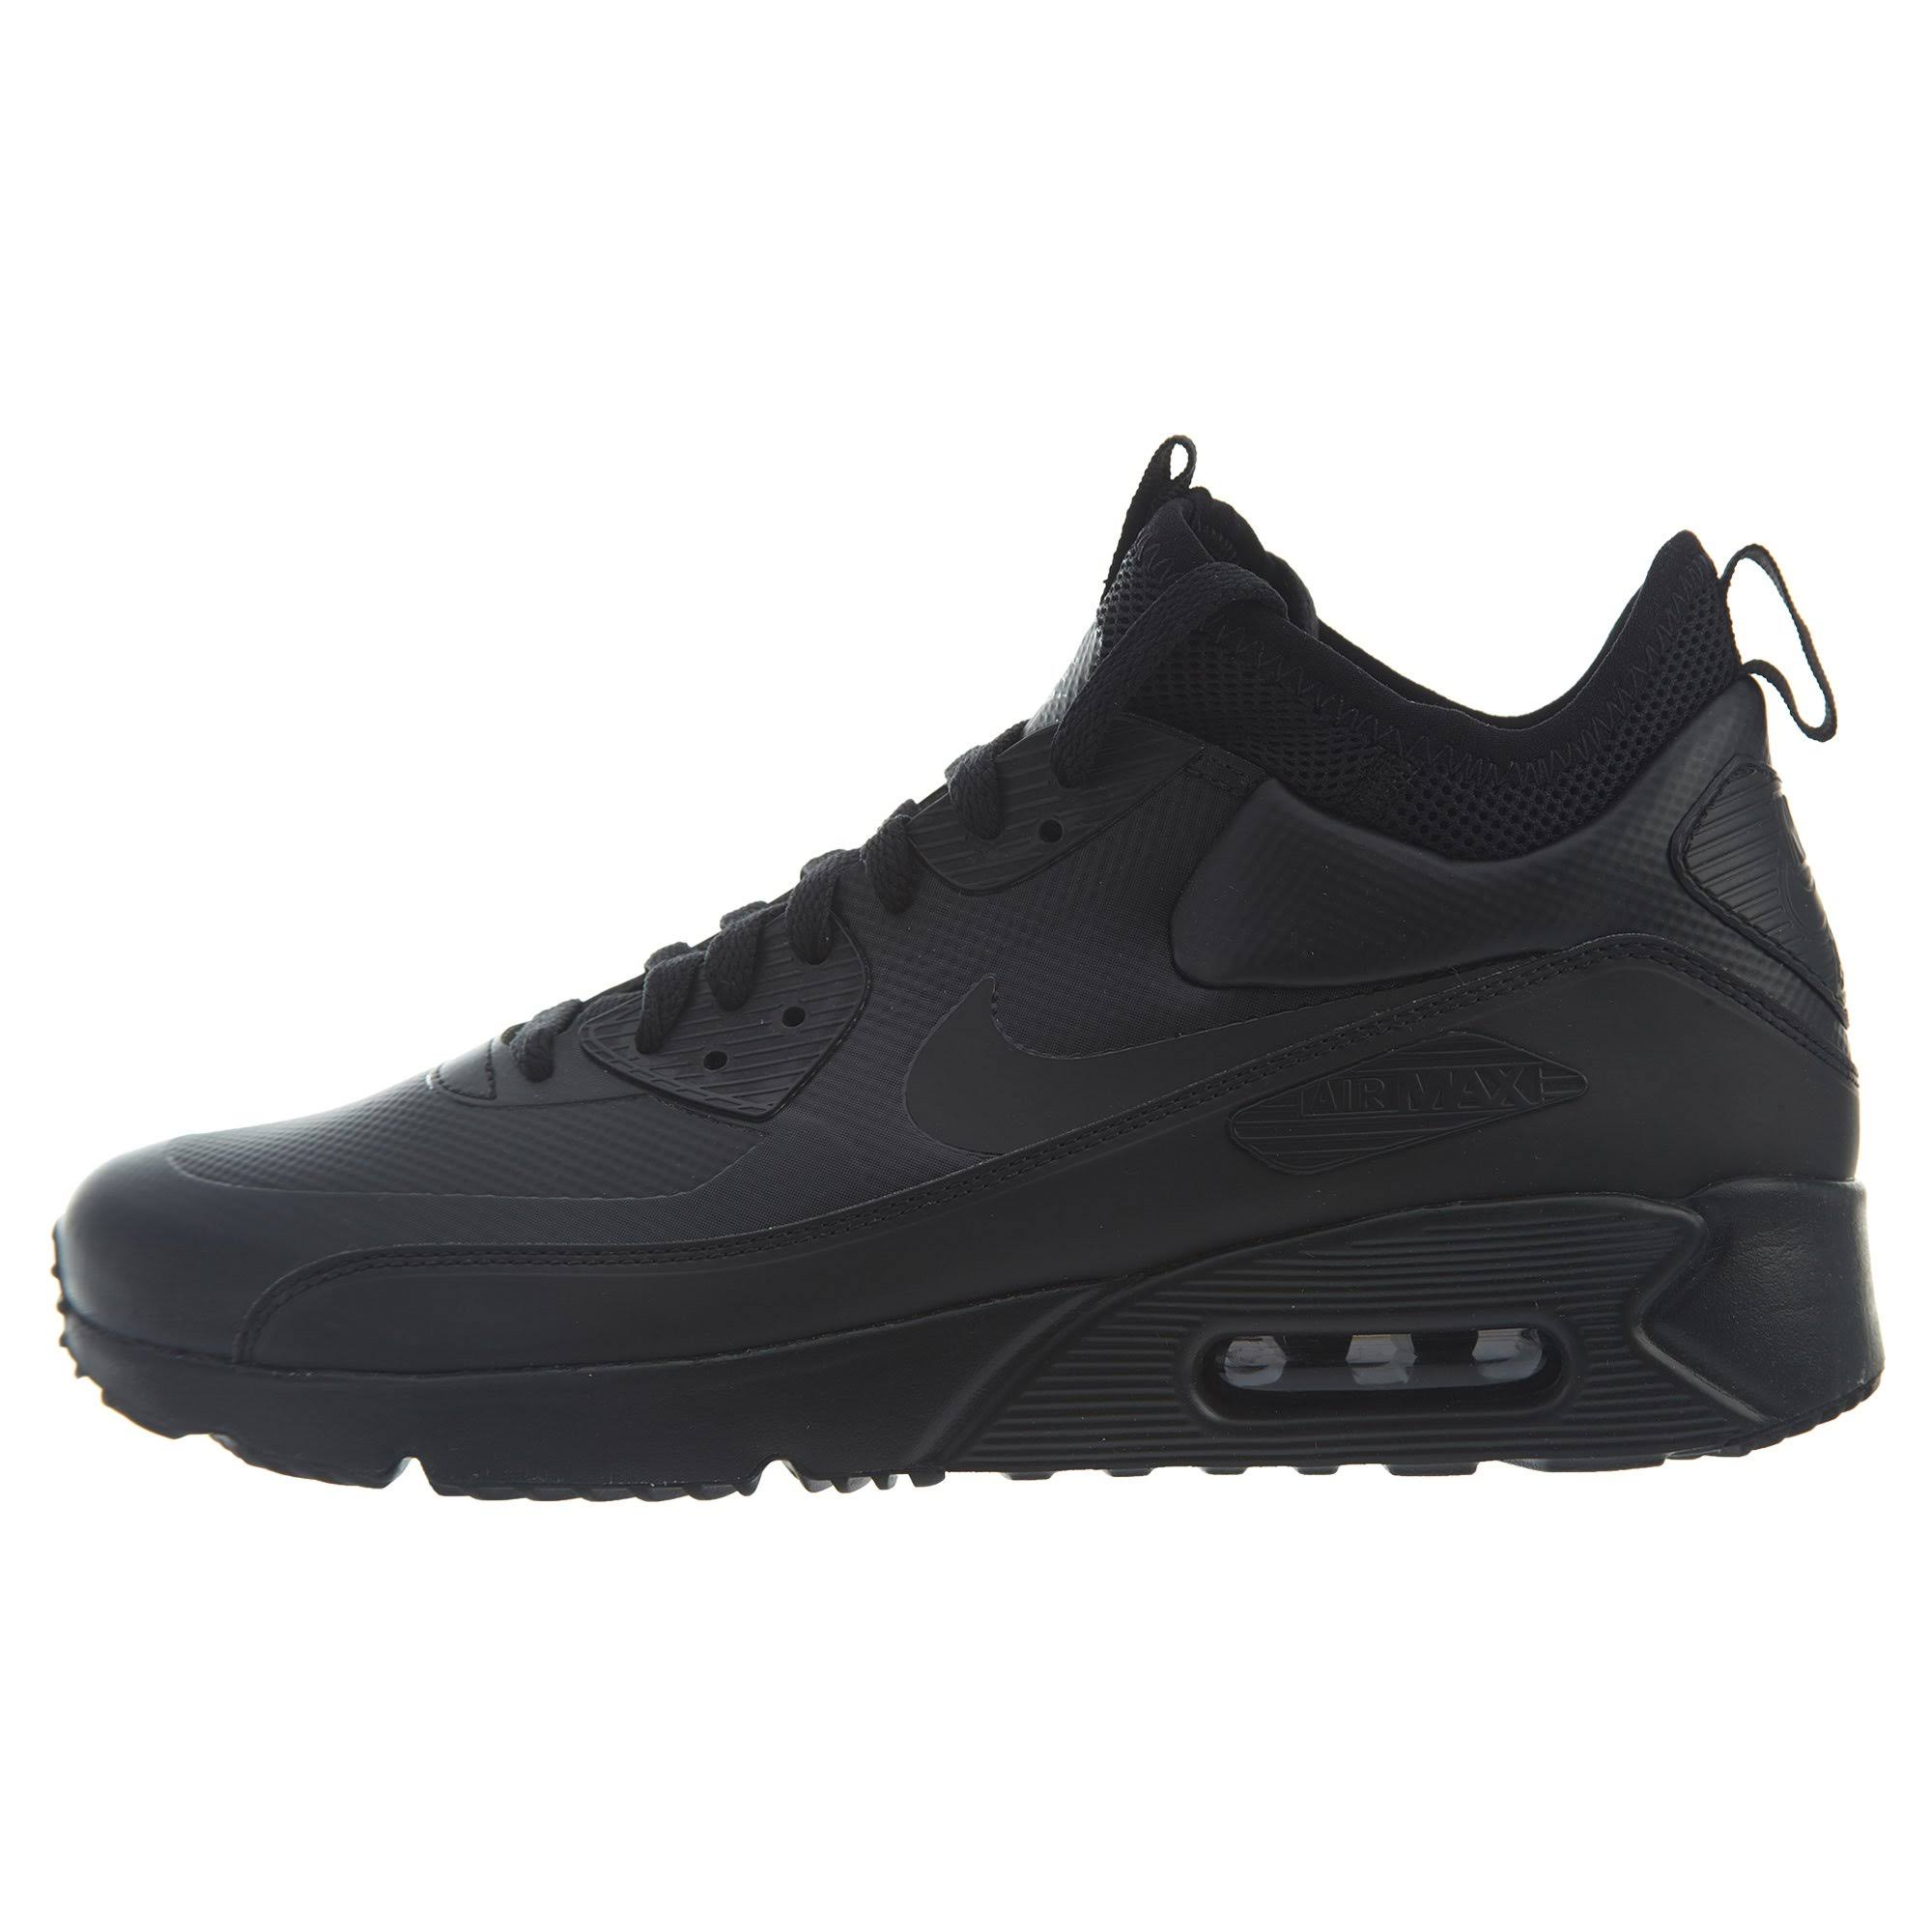 Mens Air Ultra 004 Max Style Winter Mid Nike 924458 90 Ydqp4